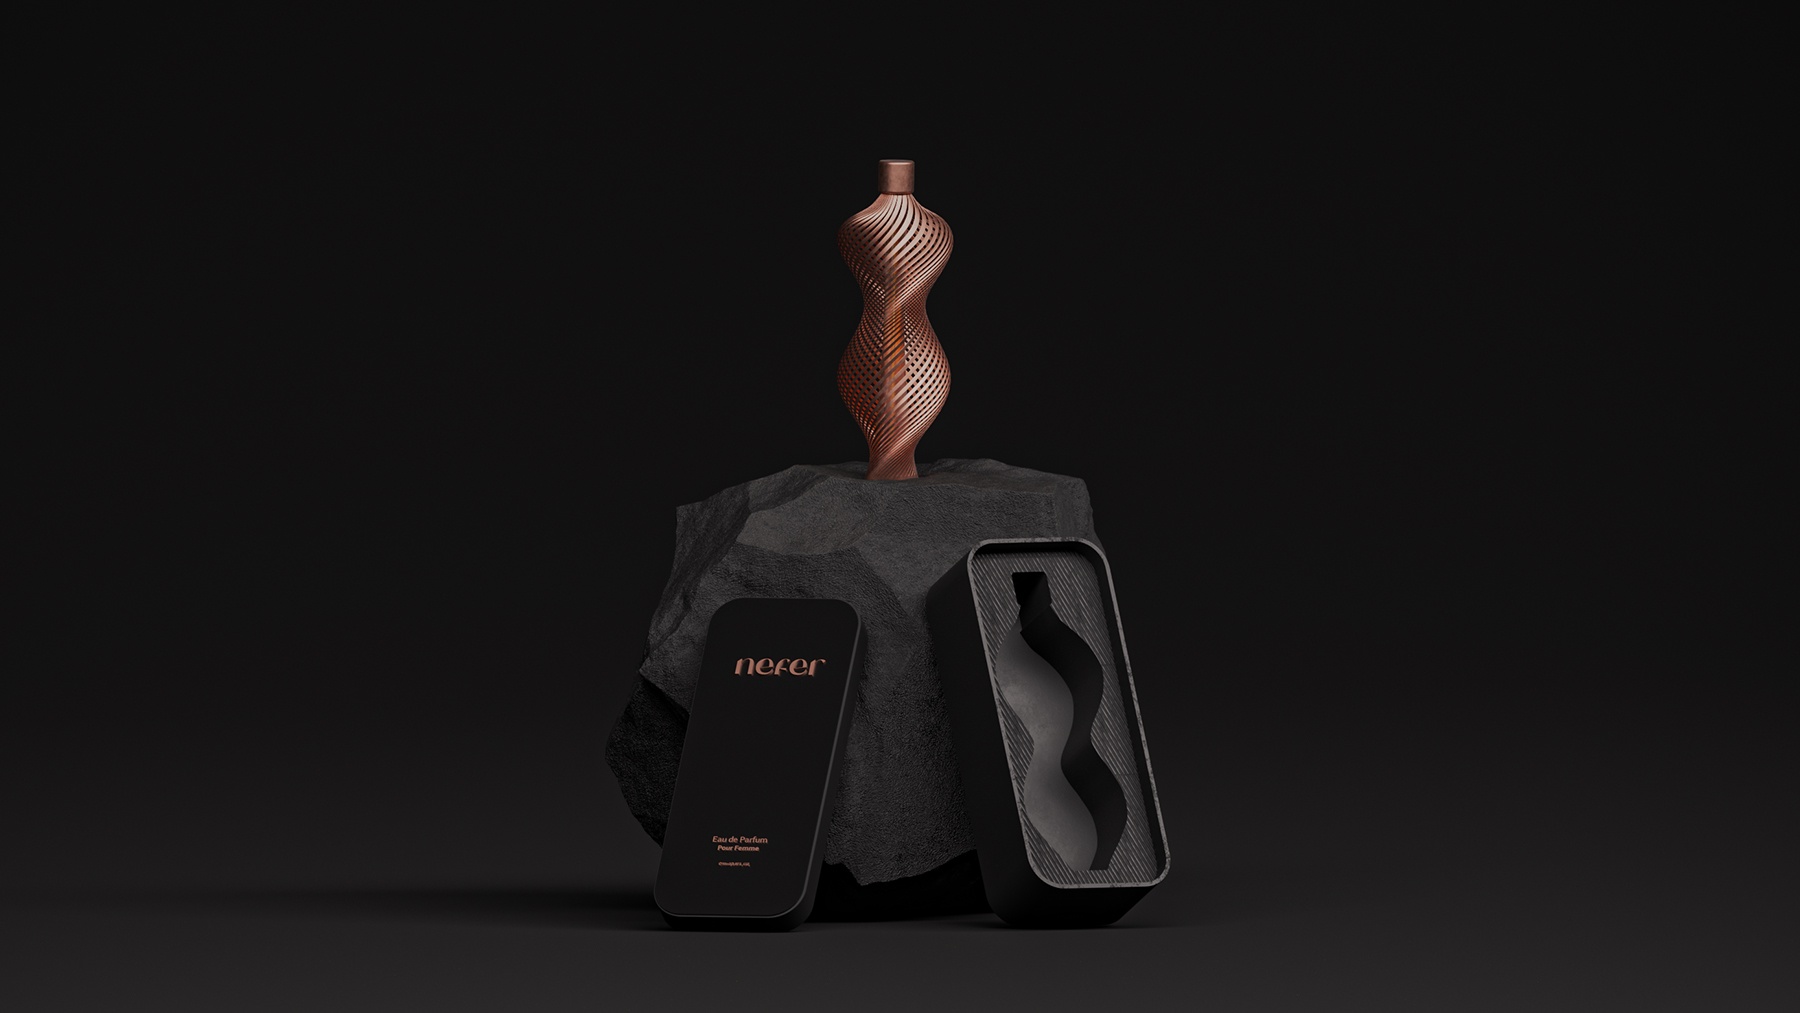 Nefer the Luxurious and Exclusive Perfume Bottle Design by Anas Belekhbizi and Amr Mousa